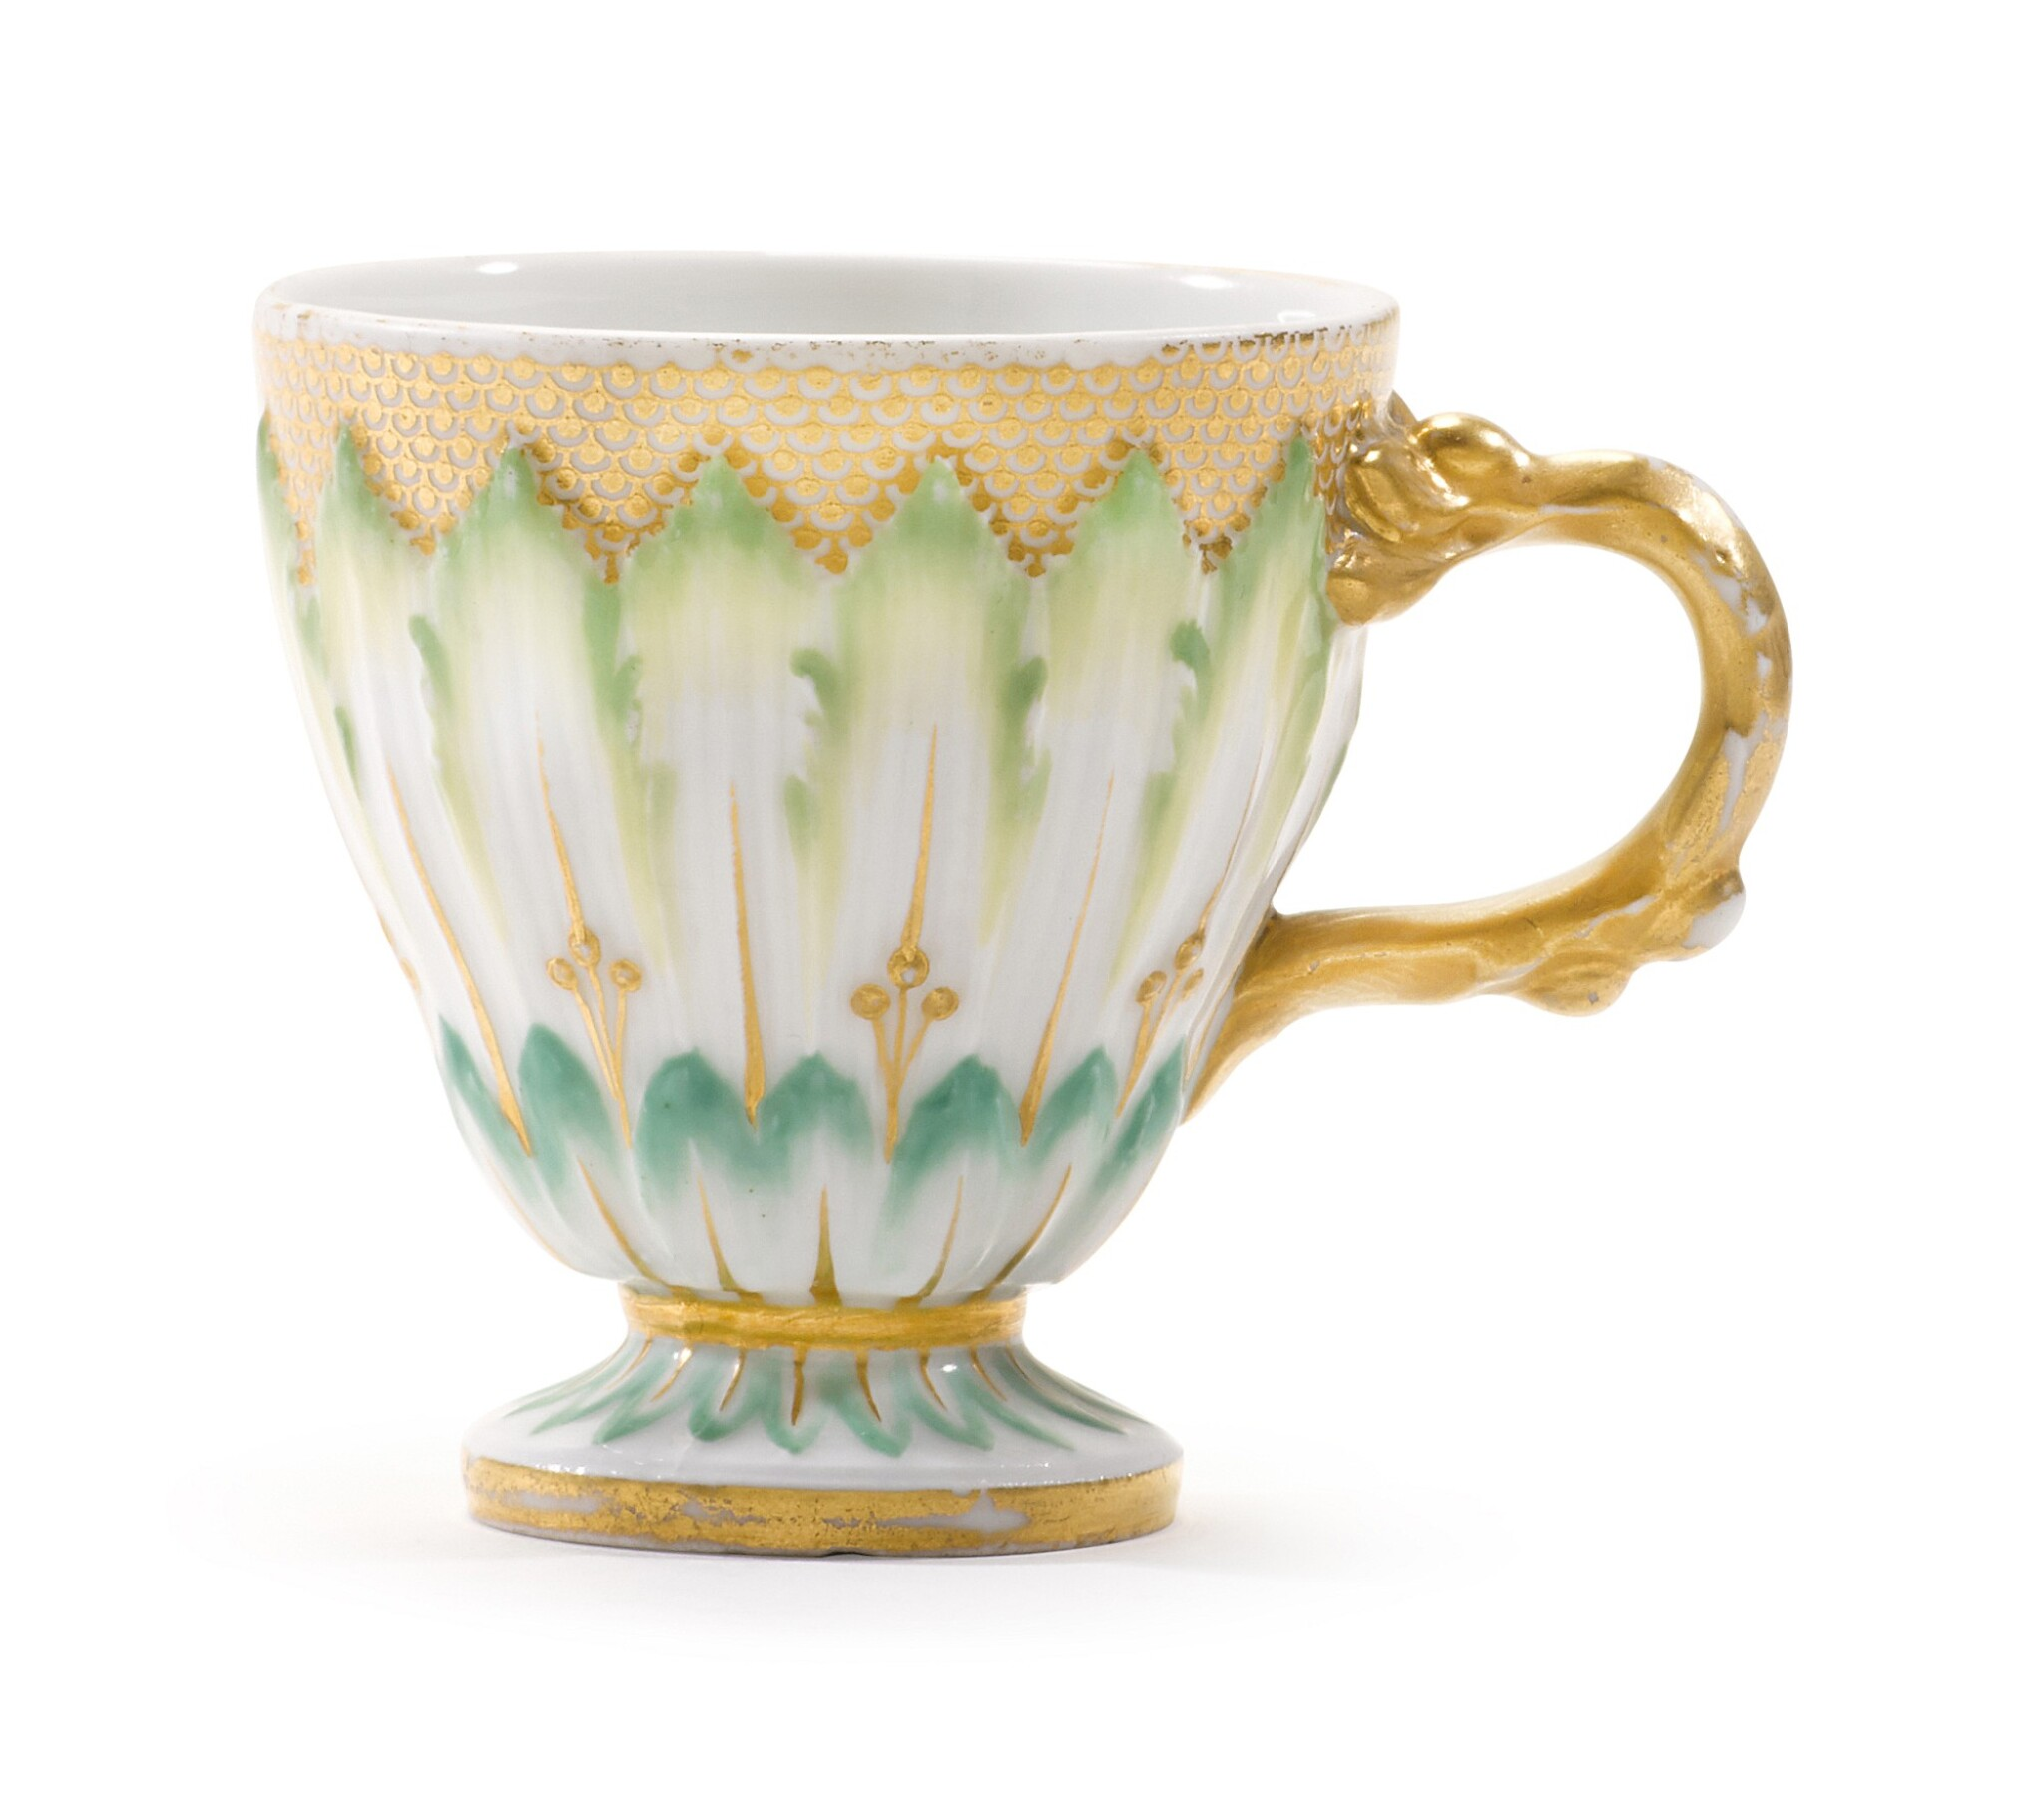 A BERLIN (K.P.M) CUP FROM THE CATHERINE THE GREAT SERVICE, CIRCA 1770-72